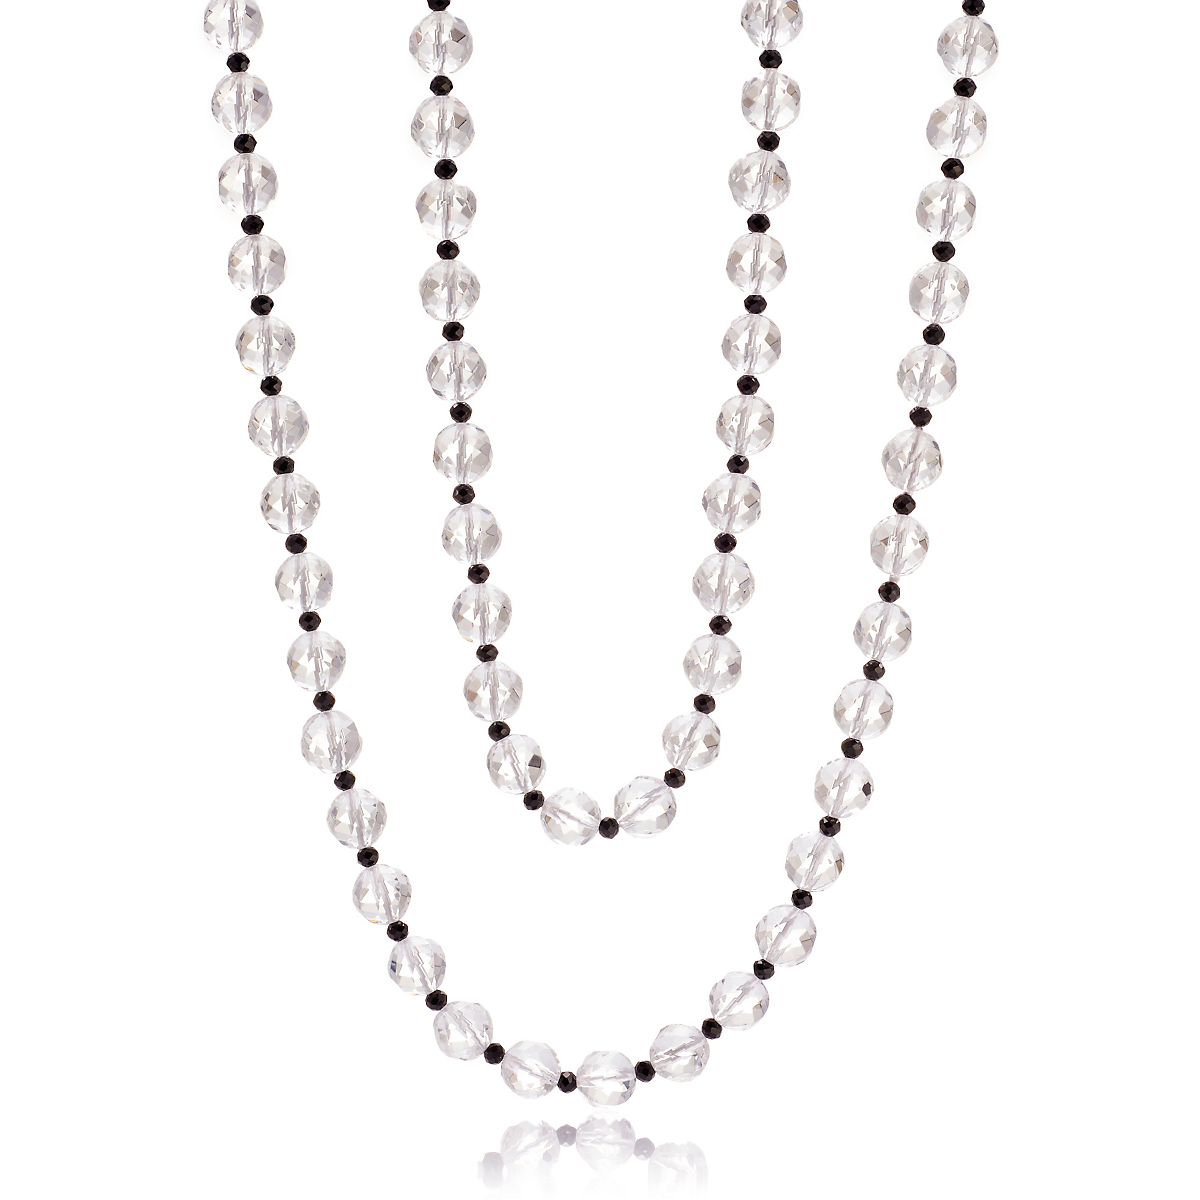 Gump's Faceted Crystal & Black Spinel Rope Necklace